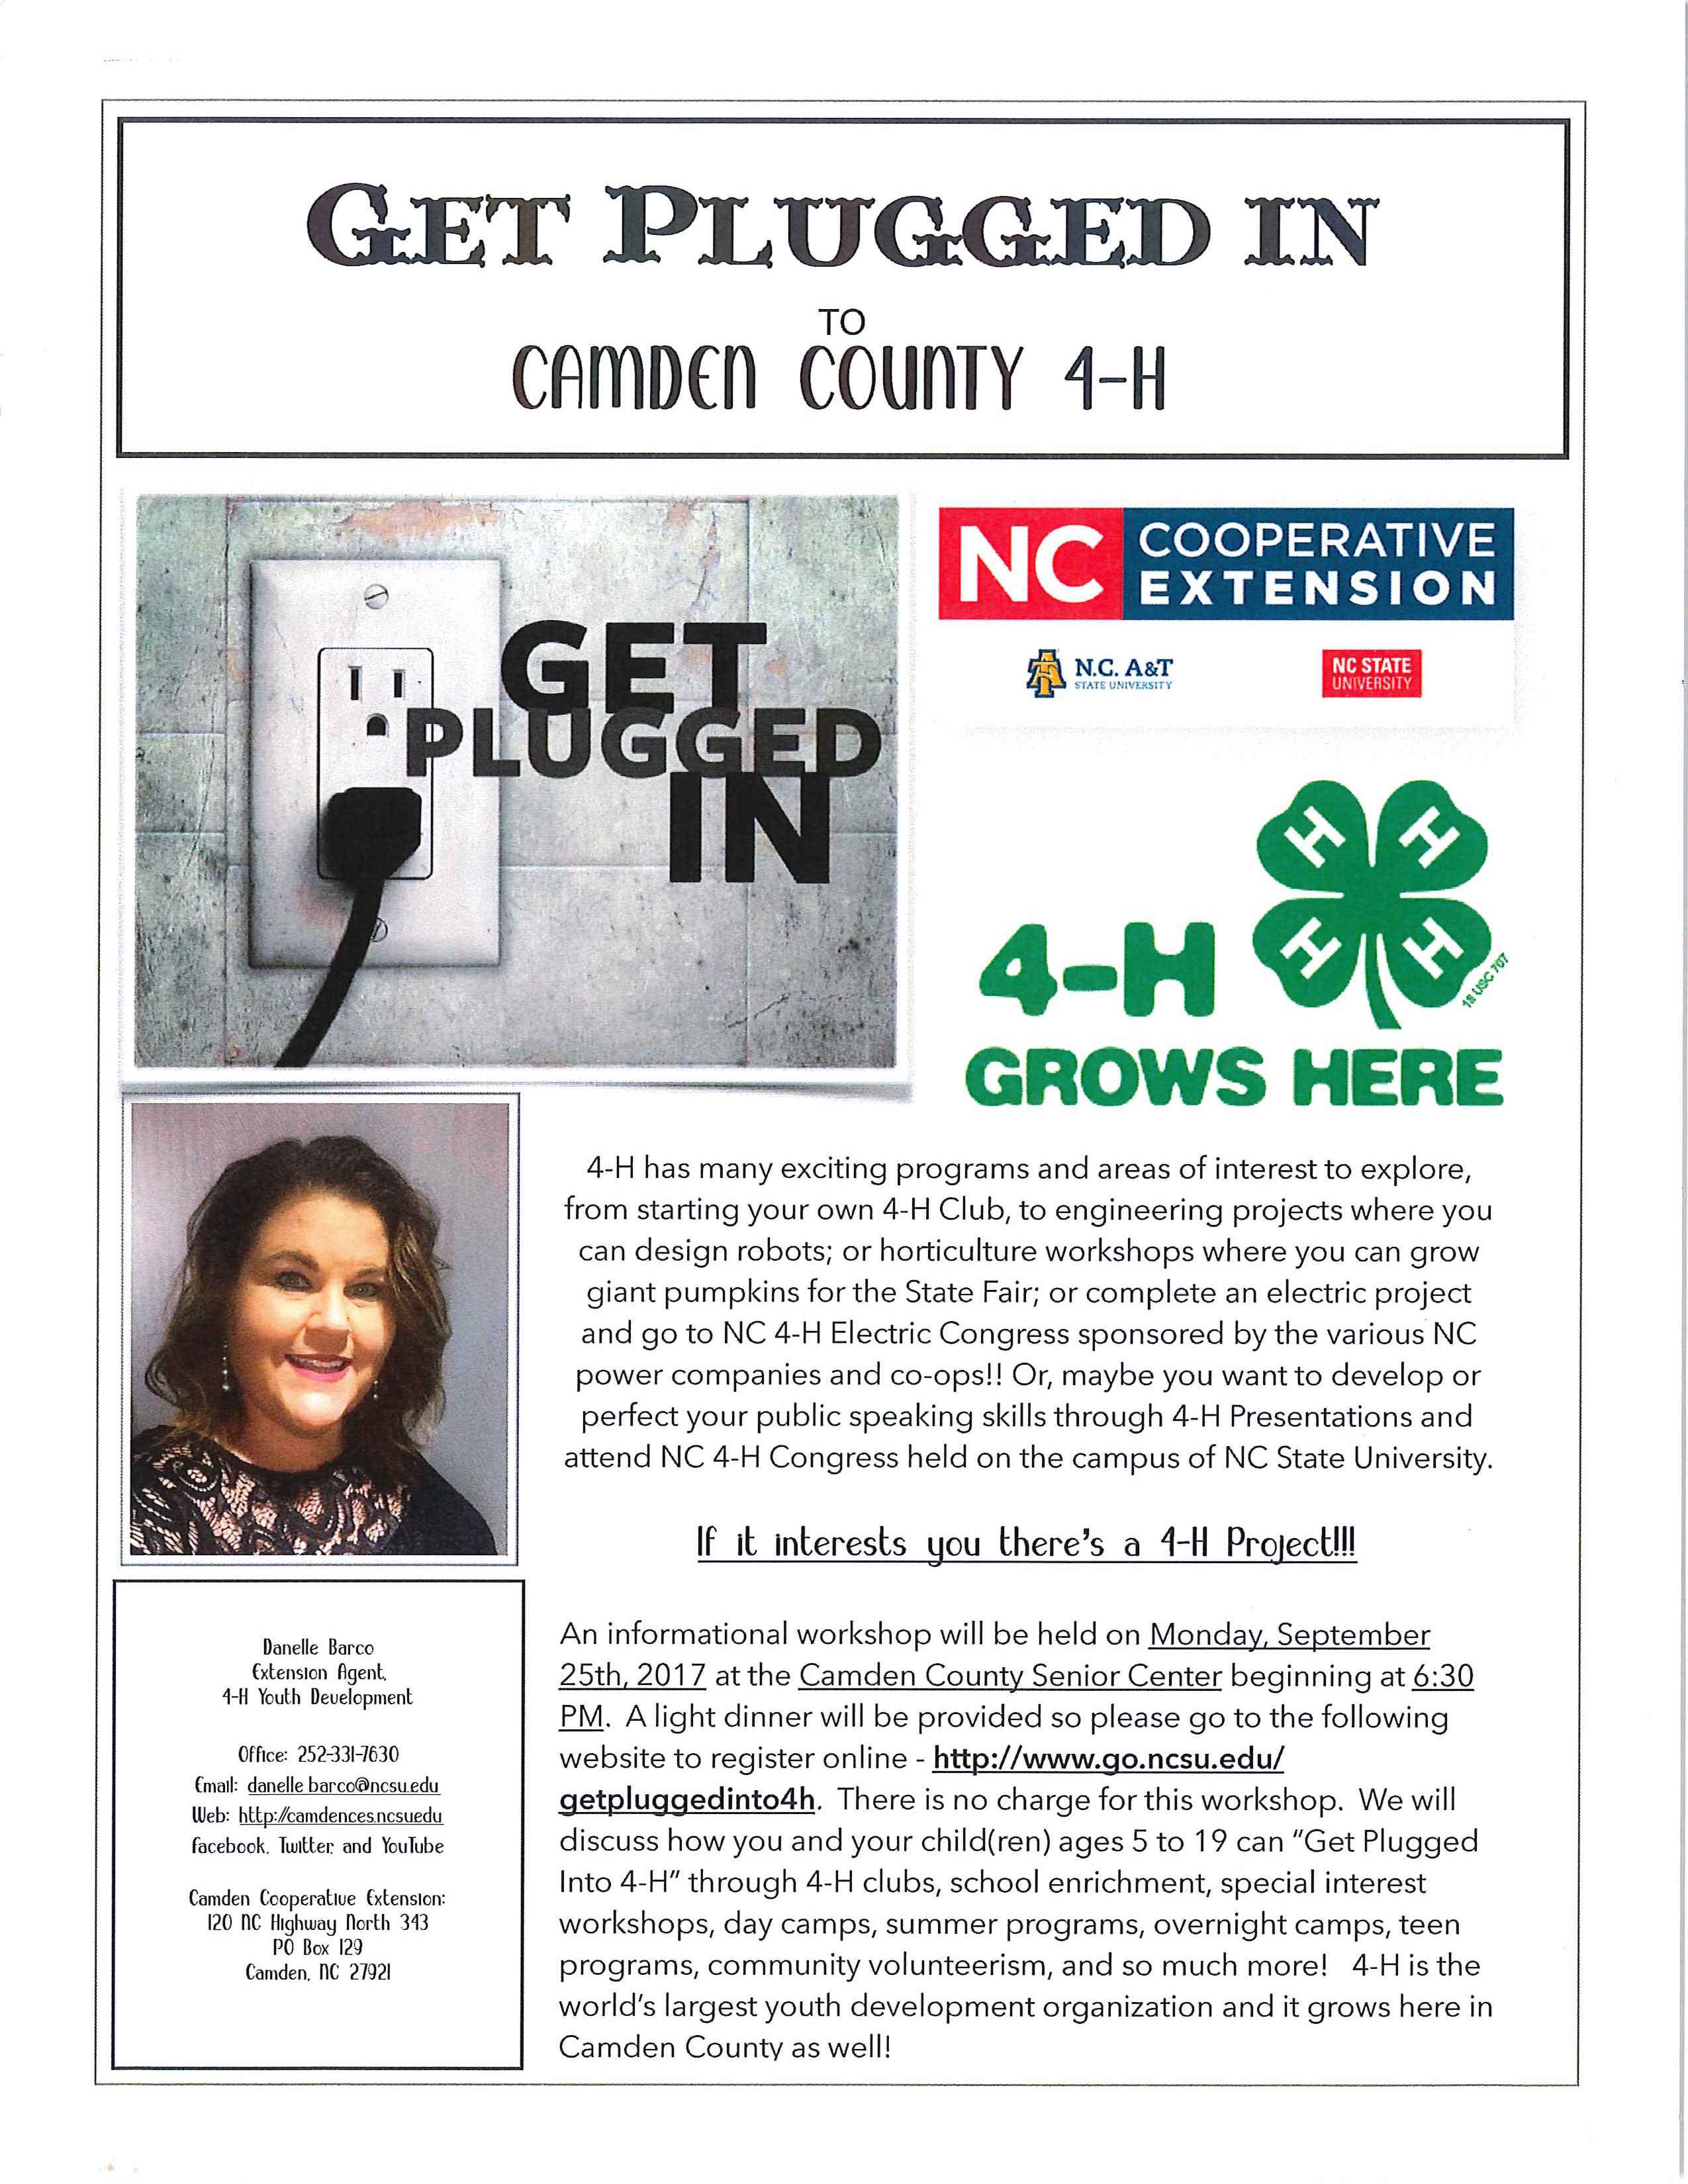 Get Plugged in to Camden County 4-H